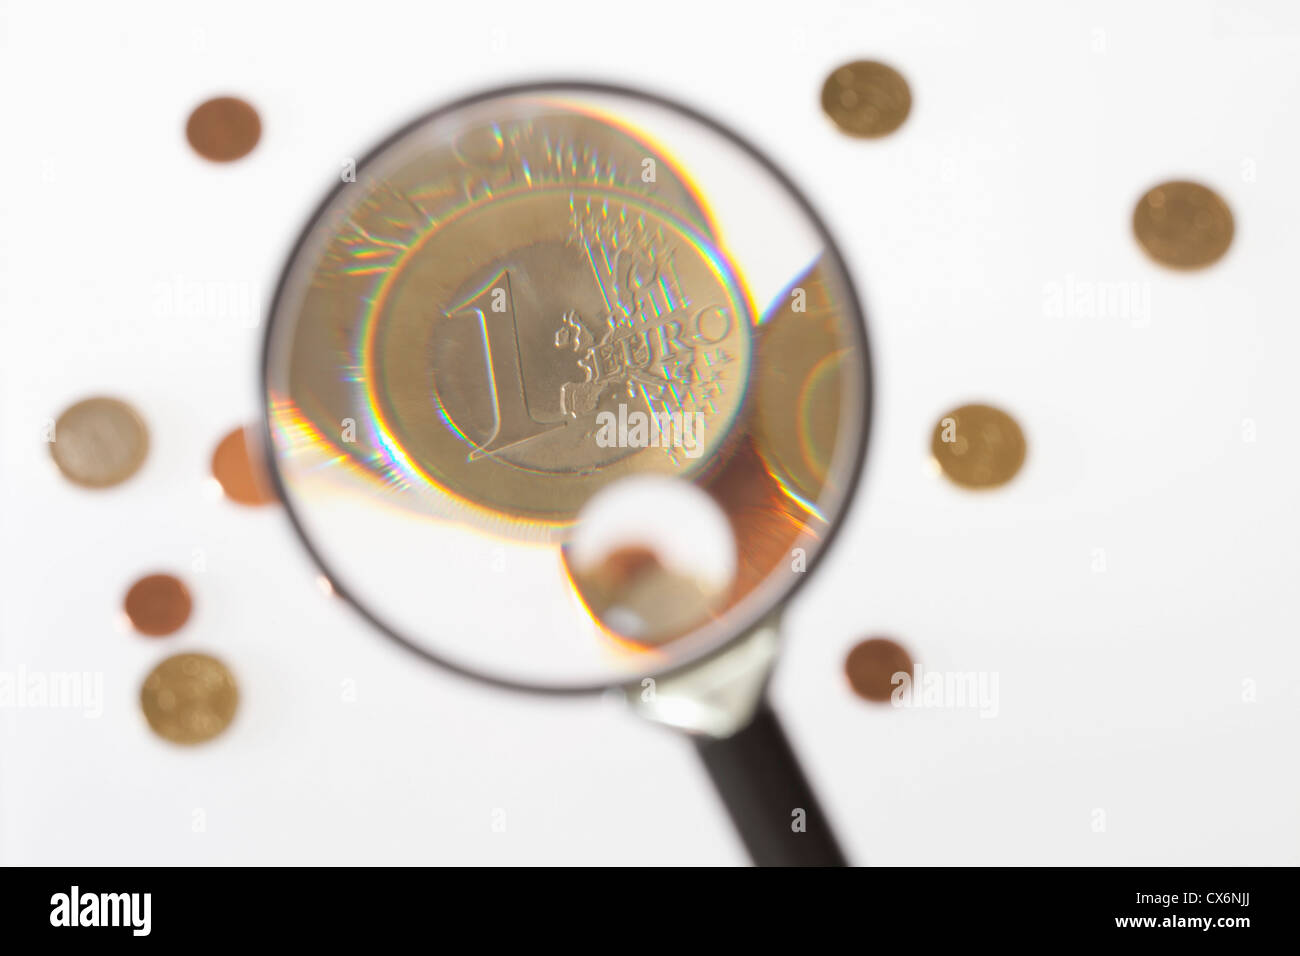 A magnifying glass magnifying a one Euro coin - Stock Image